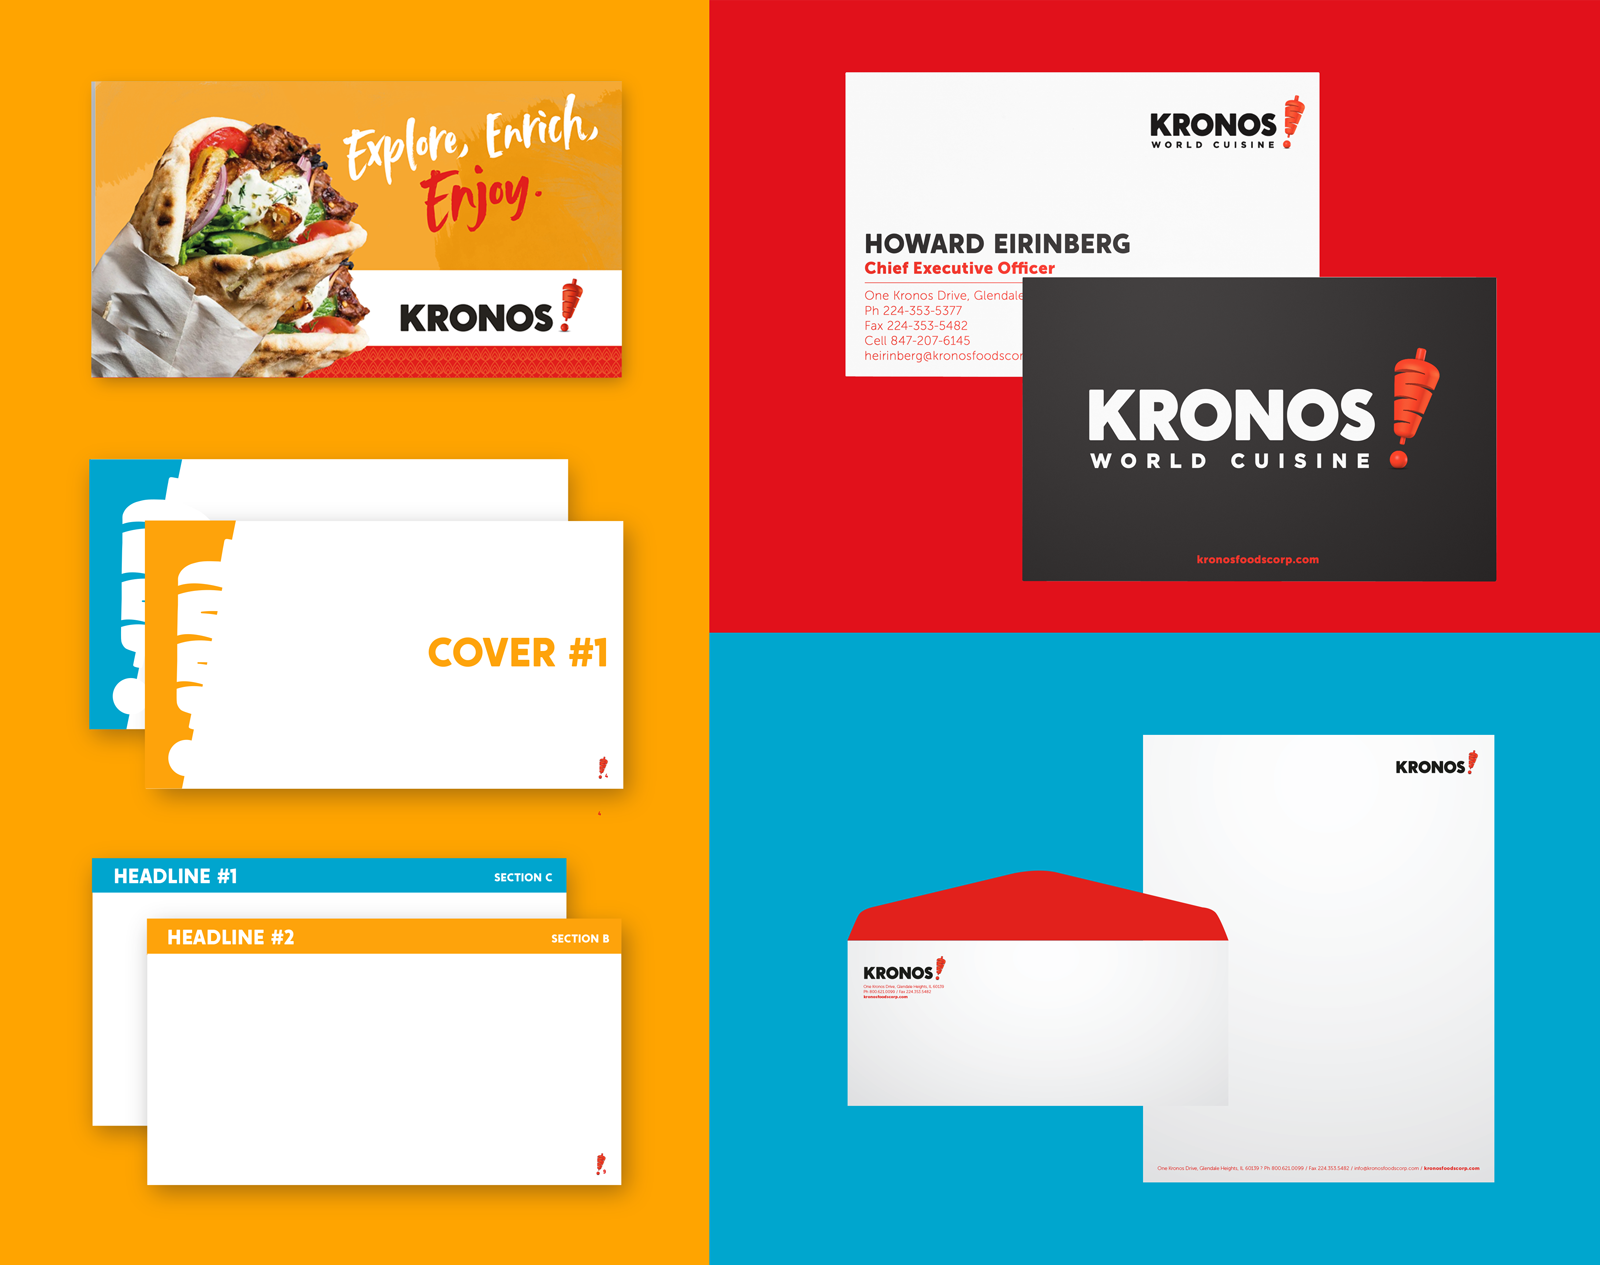 Kronos World Cuising - Brand Refresh - Presentation and Printed Elements